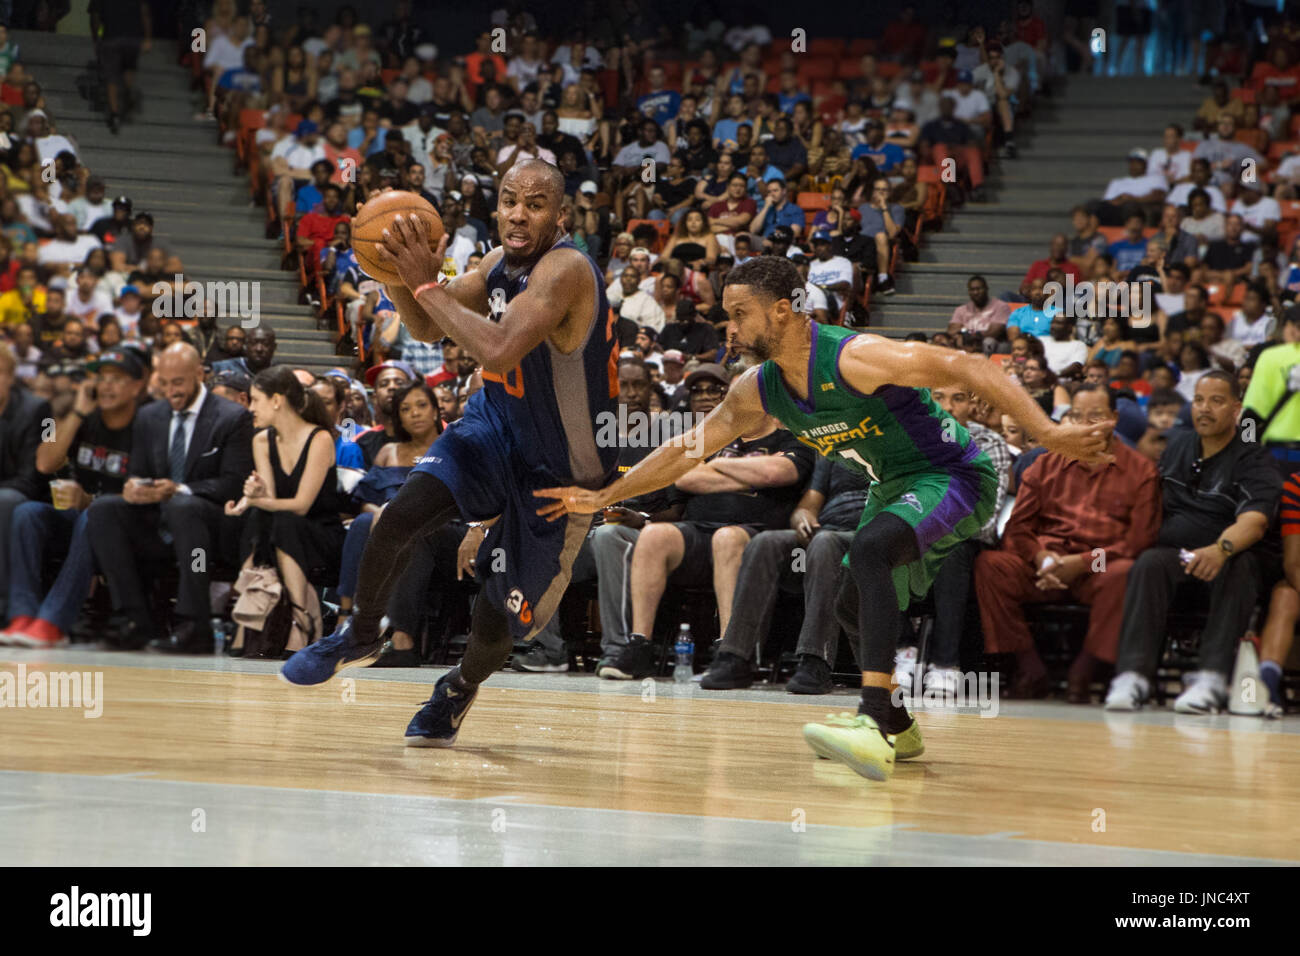 7ee495318245 Andre Owens  20 3 s Company offense while Mahmoud Abdul-Rauf  7 3 Headed  Monsters guards him during Game  3 Big3 Week 5 3-on-3 tournament UIC  Pavilion July ...